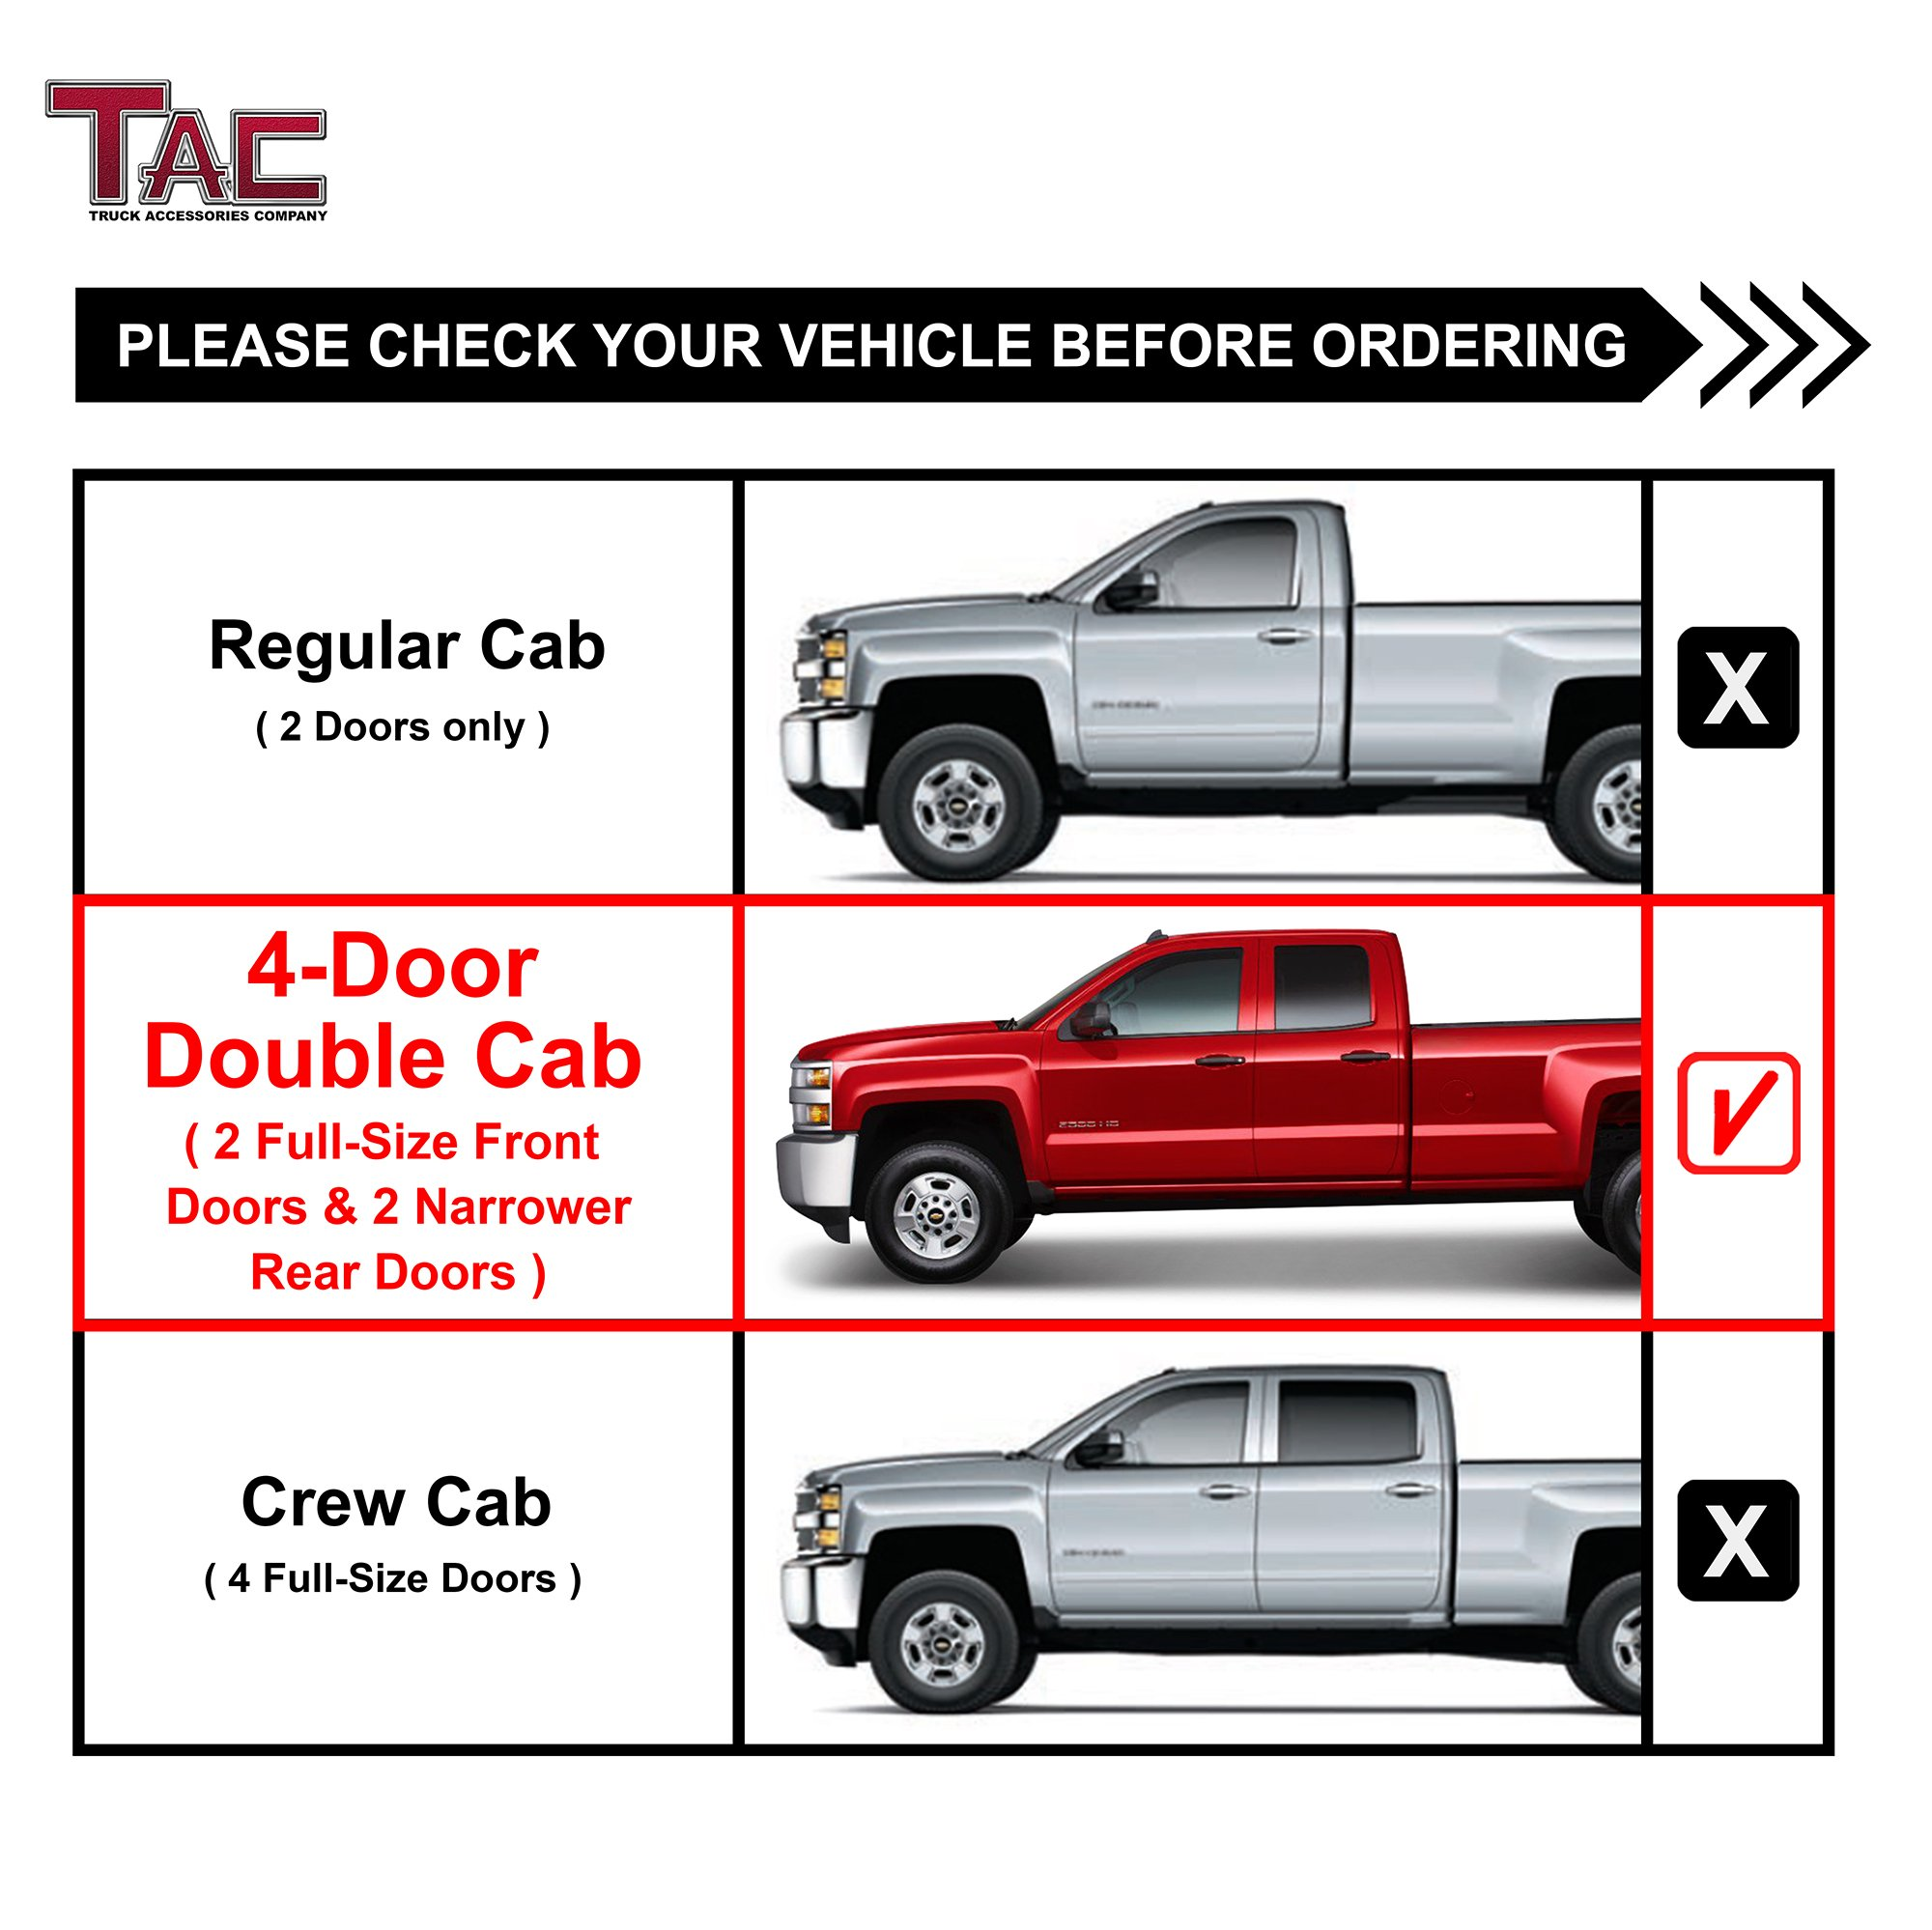 TAC Side Steps Fit Chevy Silverado/GMC Sierra 1999-2018 1500 & 1999-2019 2500/3500 Extended/Double Cab (Excl. C/K Classic) 3'' Stainless Steel Side Bars Nerf Bars Step Rails Running Boards 2 Pieces by TAC TRUCK ACCESSORIES COMPANY (Image #4)